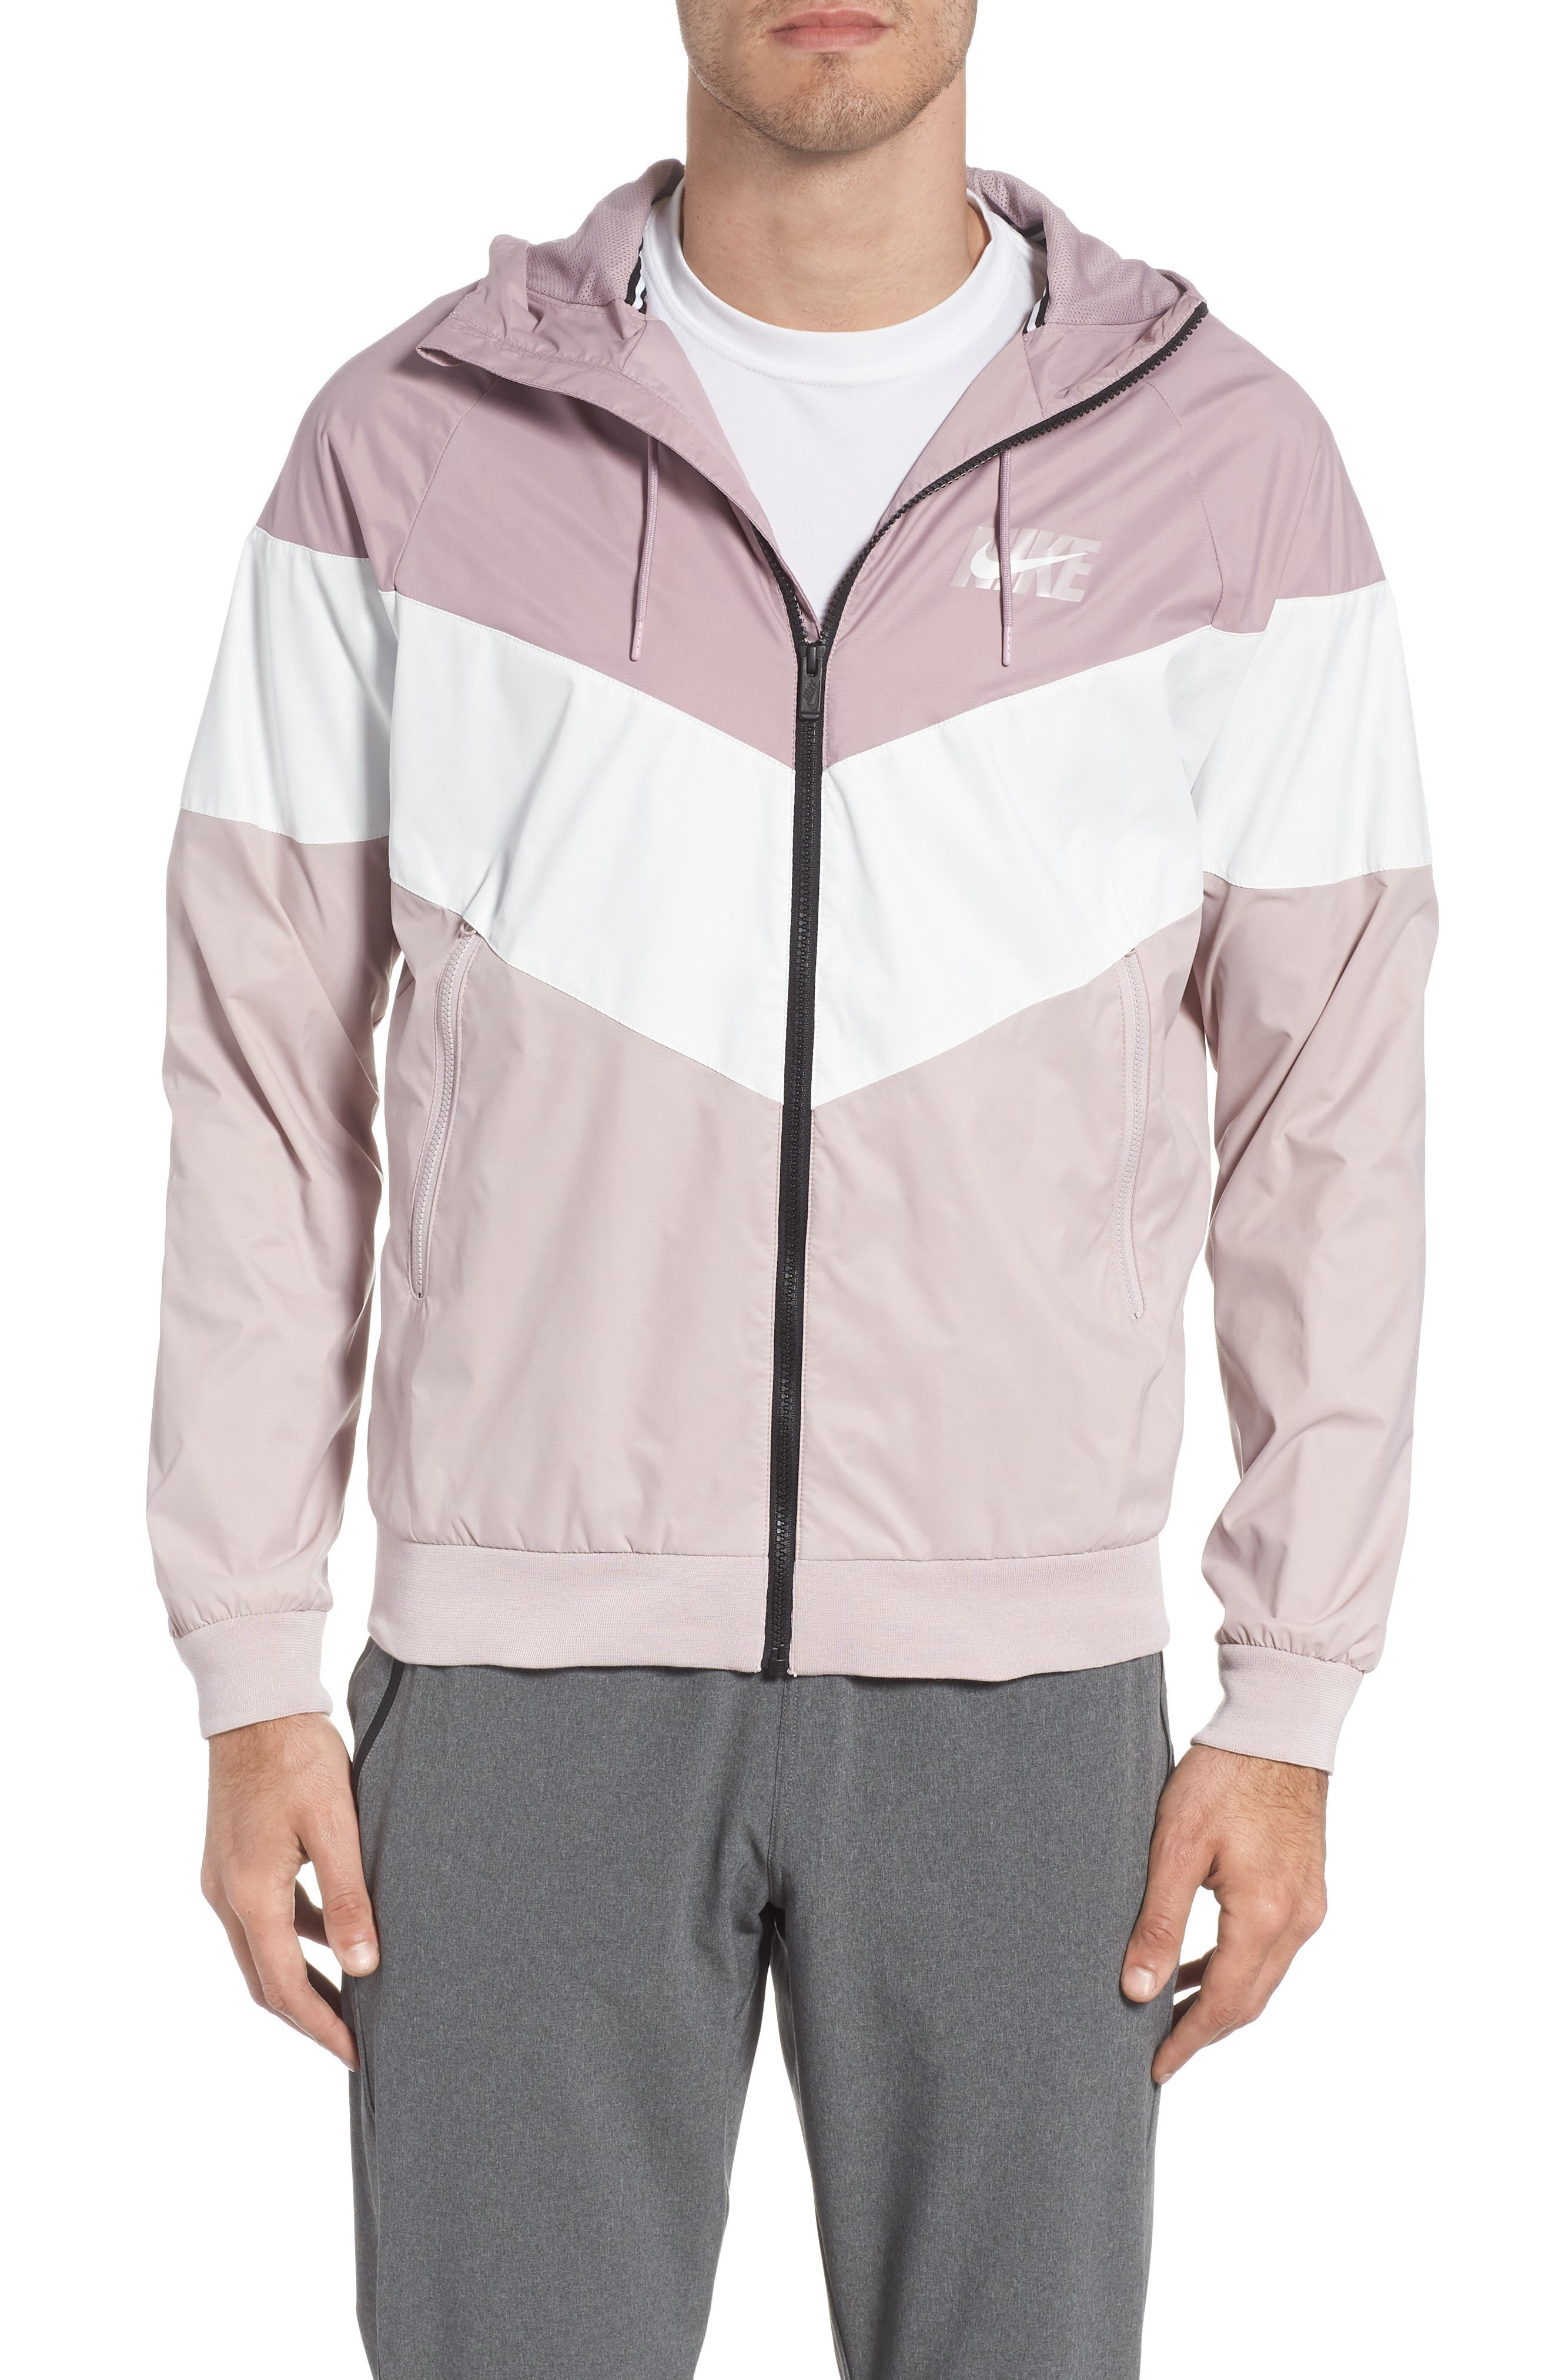 Windrunner Wind & Water Repellent Hooded Jacket,                             Main thumbnail 1, color,                             Elemental Rose/ Summit White